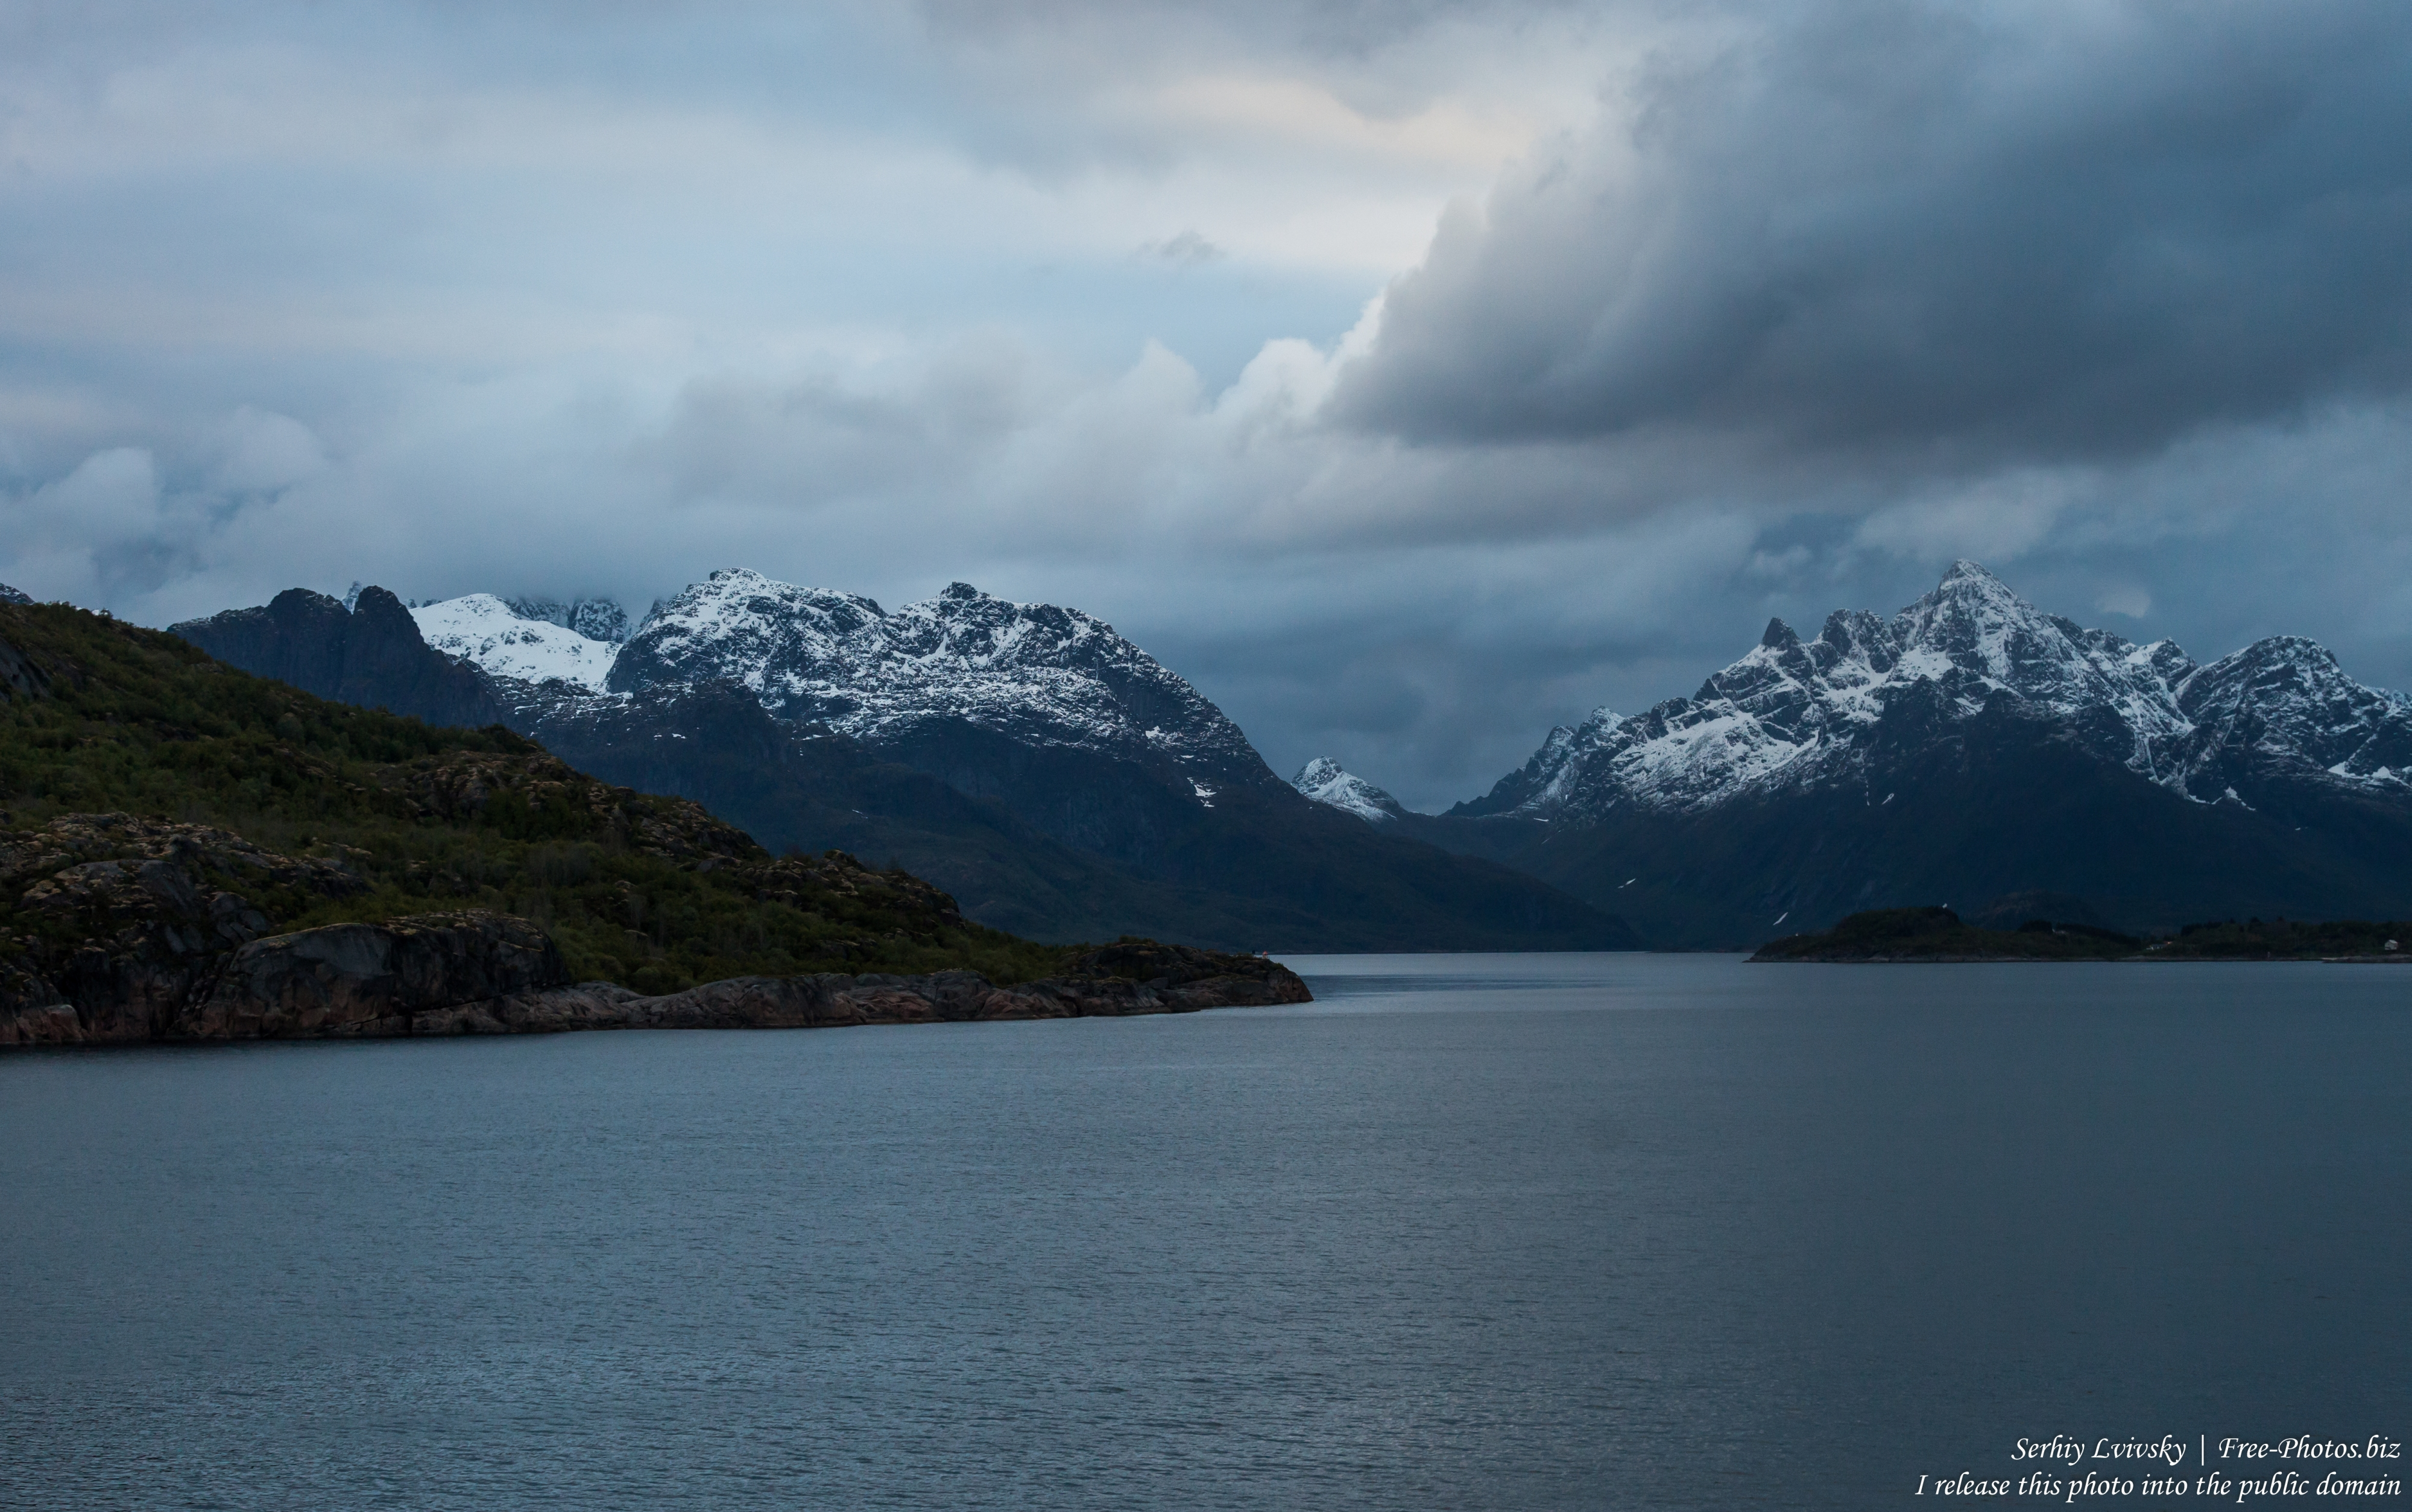 way_from_svolvaer_to_trollfjord_norway_photographed_in_june_2018_by_serhiy_lvivsky_05